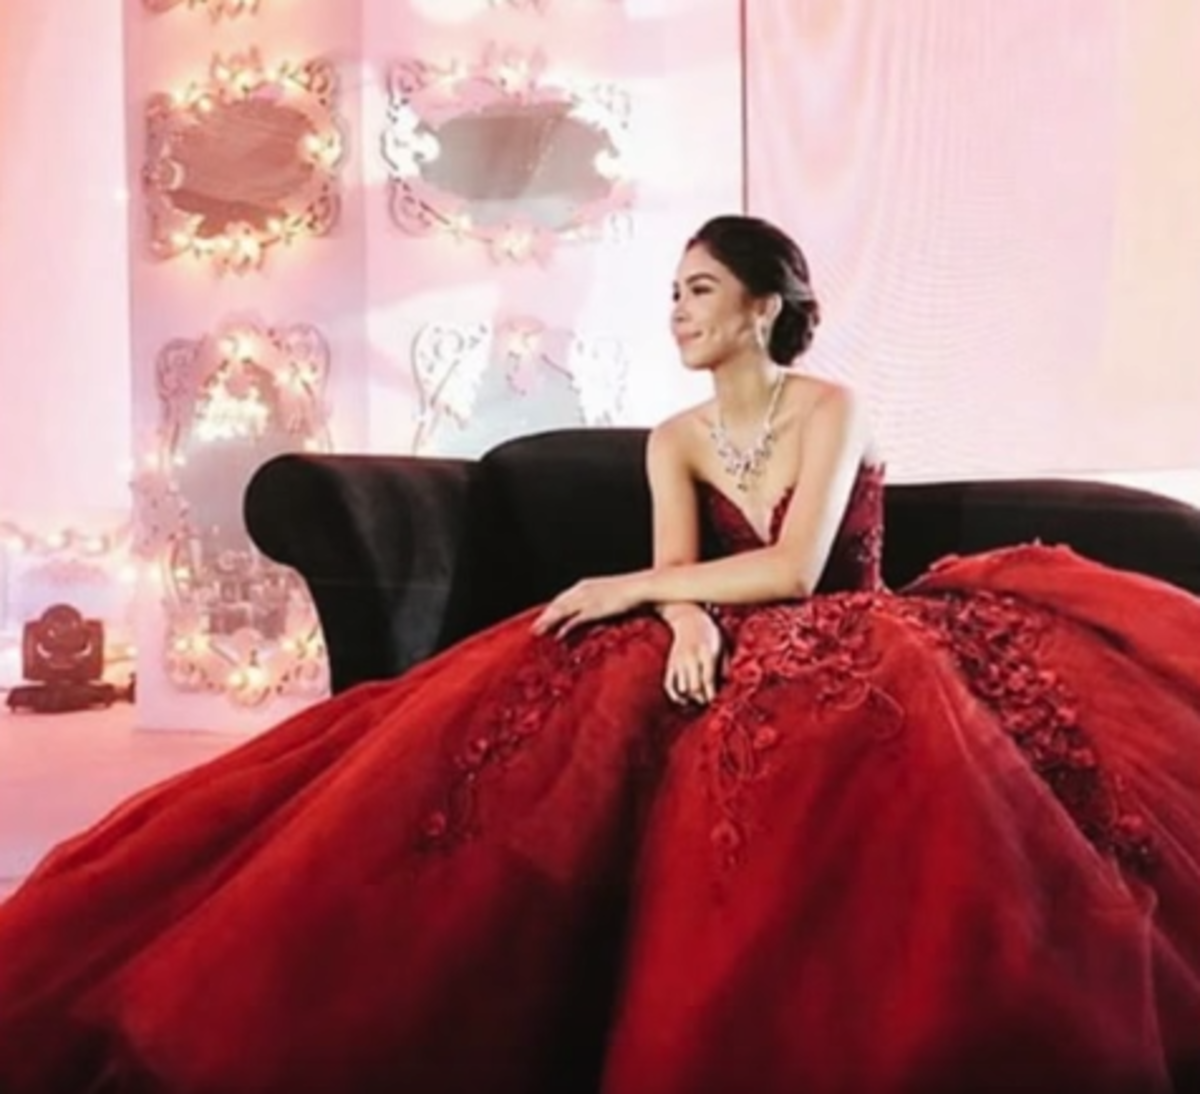 Julia Barretto @ 18 debut, March 10, 2015.